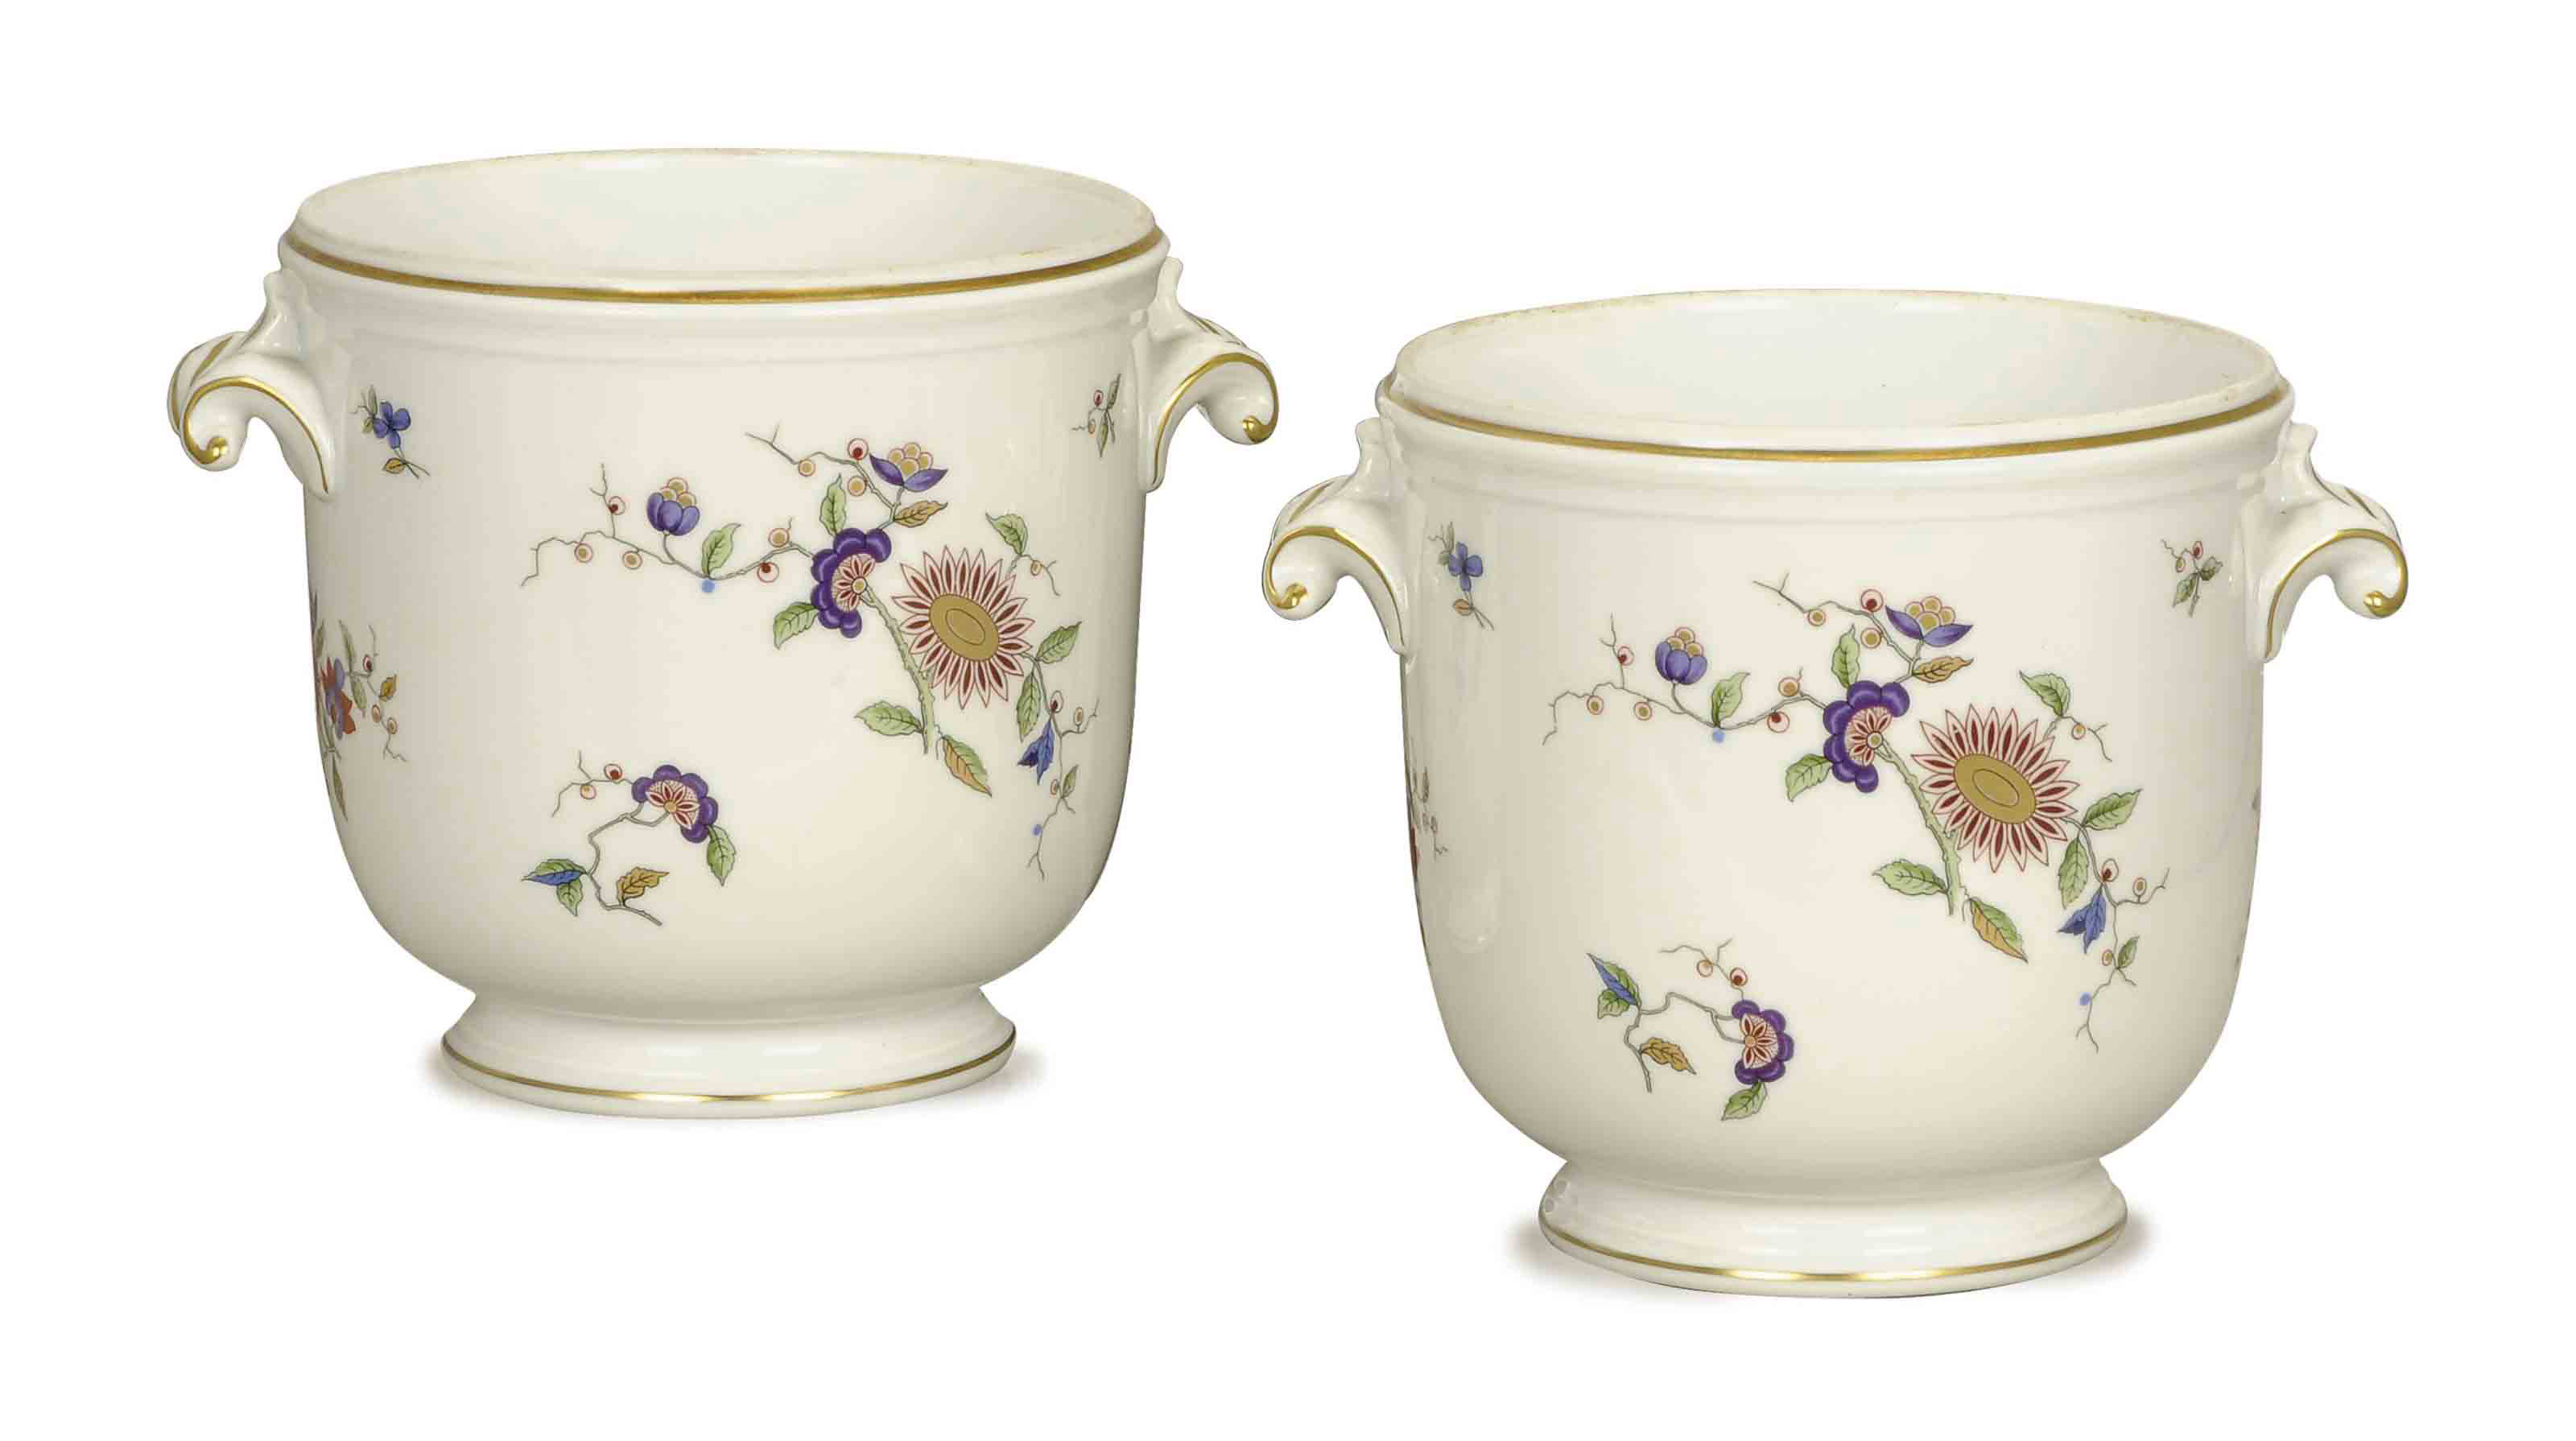 A PAIR OF ITALIAN PORCELAIN BOTTLE COOLERS,